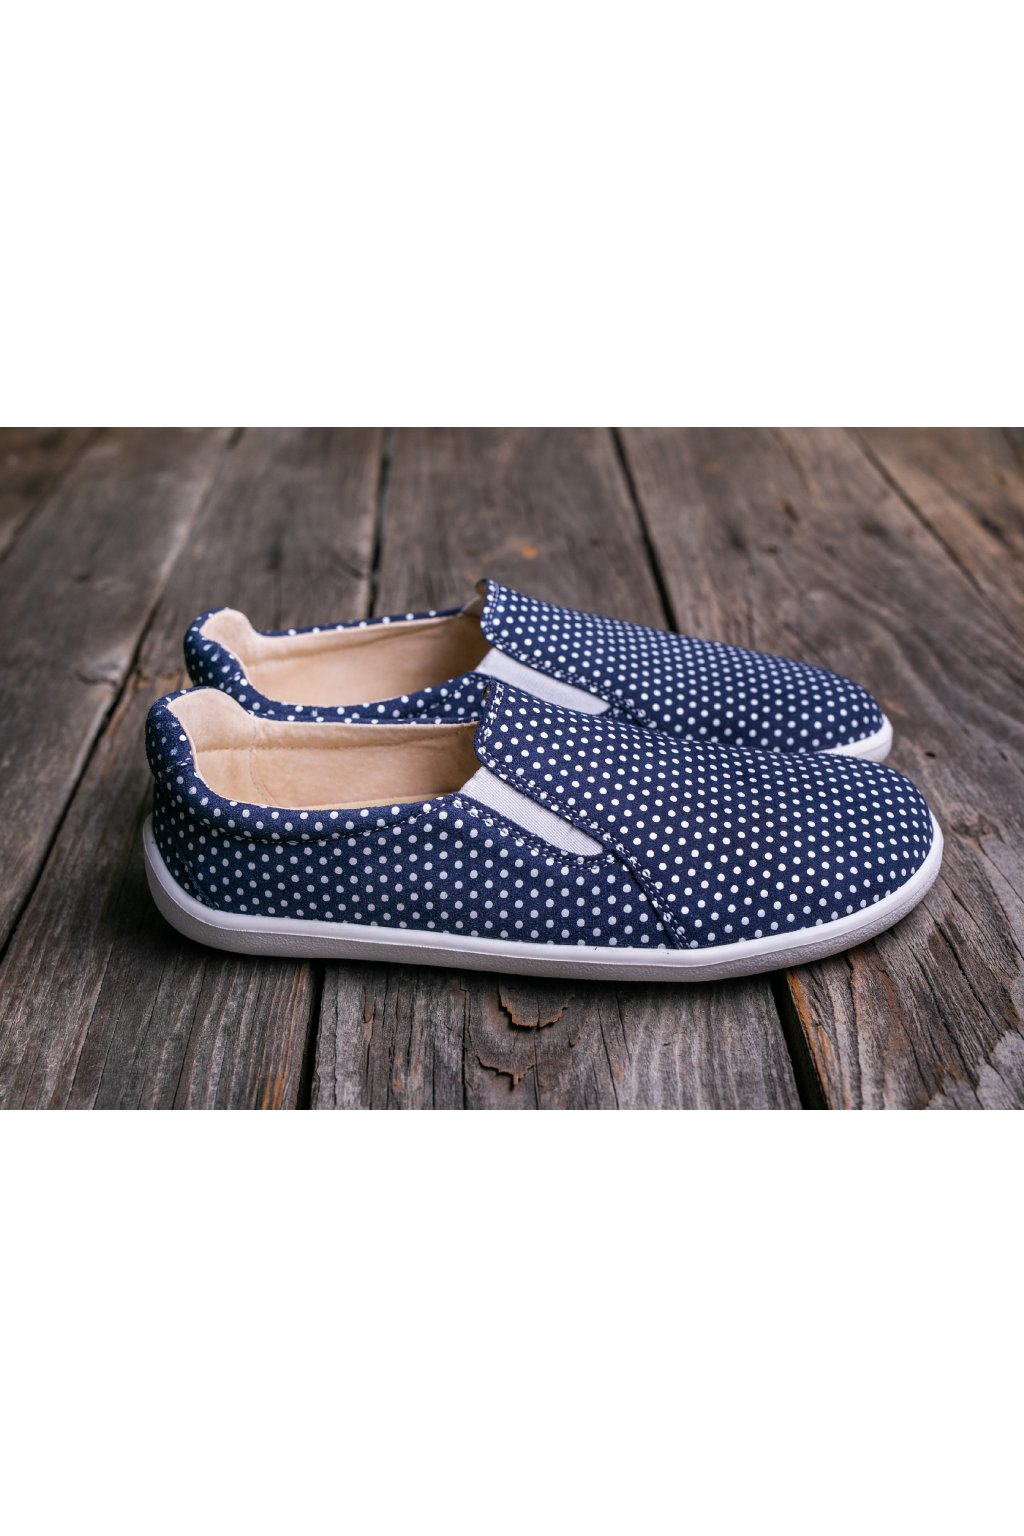 Be Lenka barefoot slip-on Eazy - Dark Blue with Dots